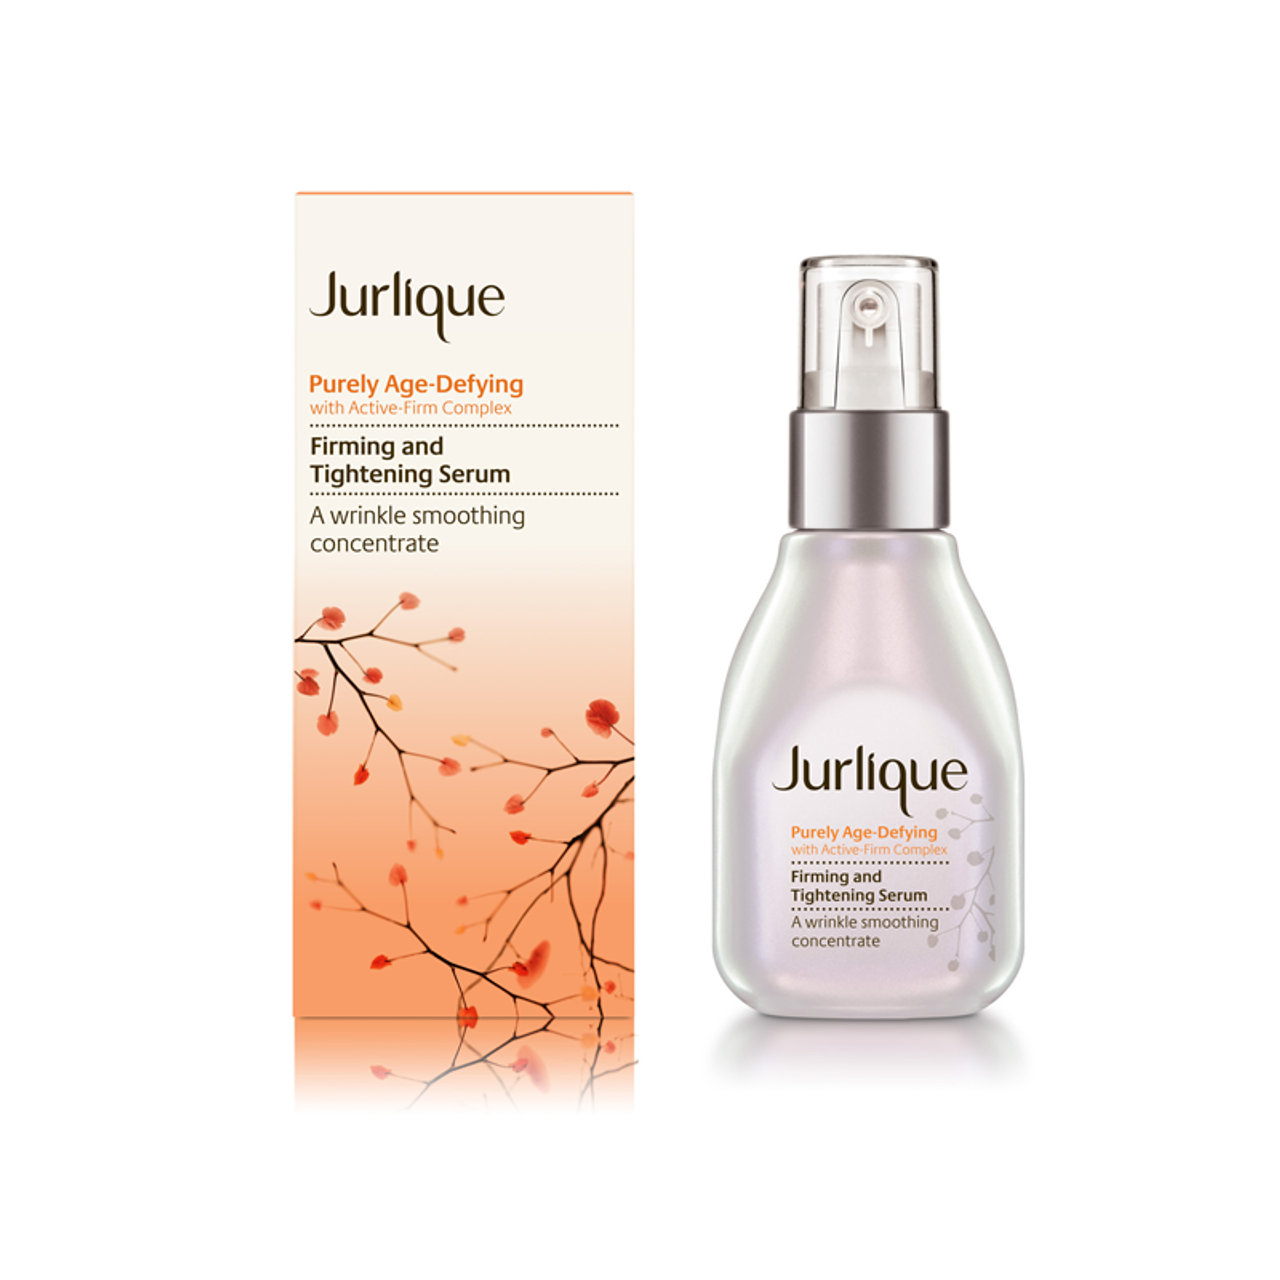 Jurlique Purely Age-Defying Firming & Tighting Serum